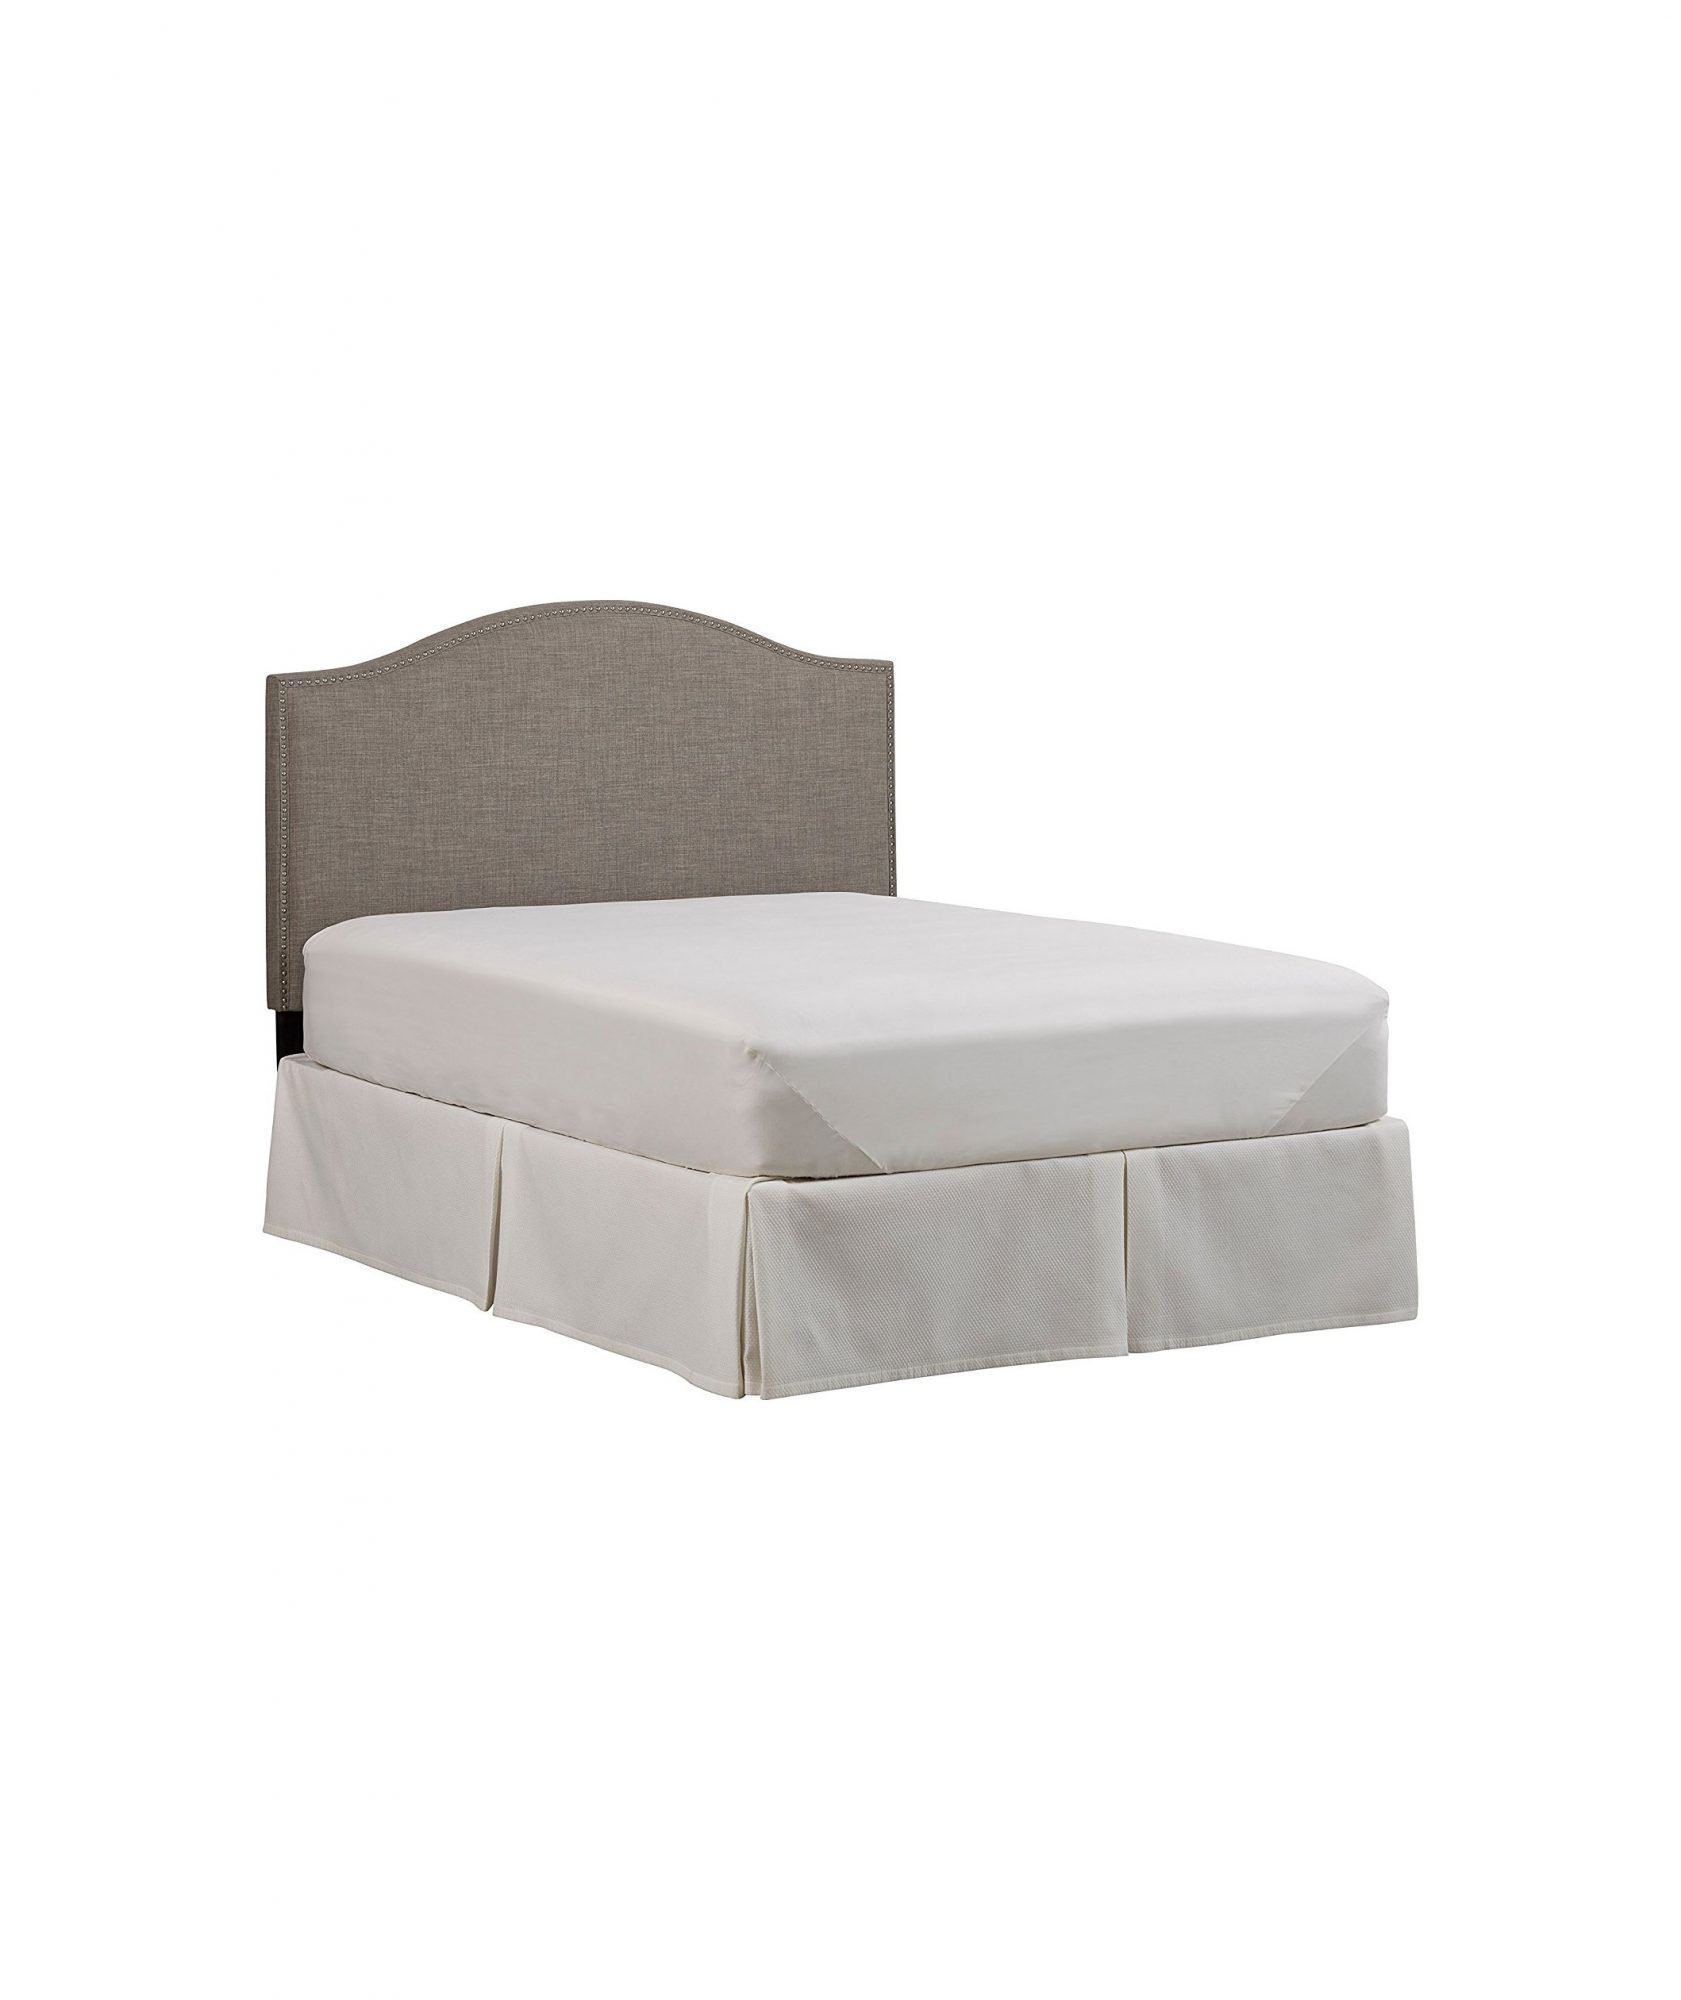 Stone & Beam Amazon Prime Day Headboard